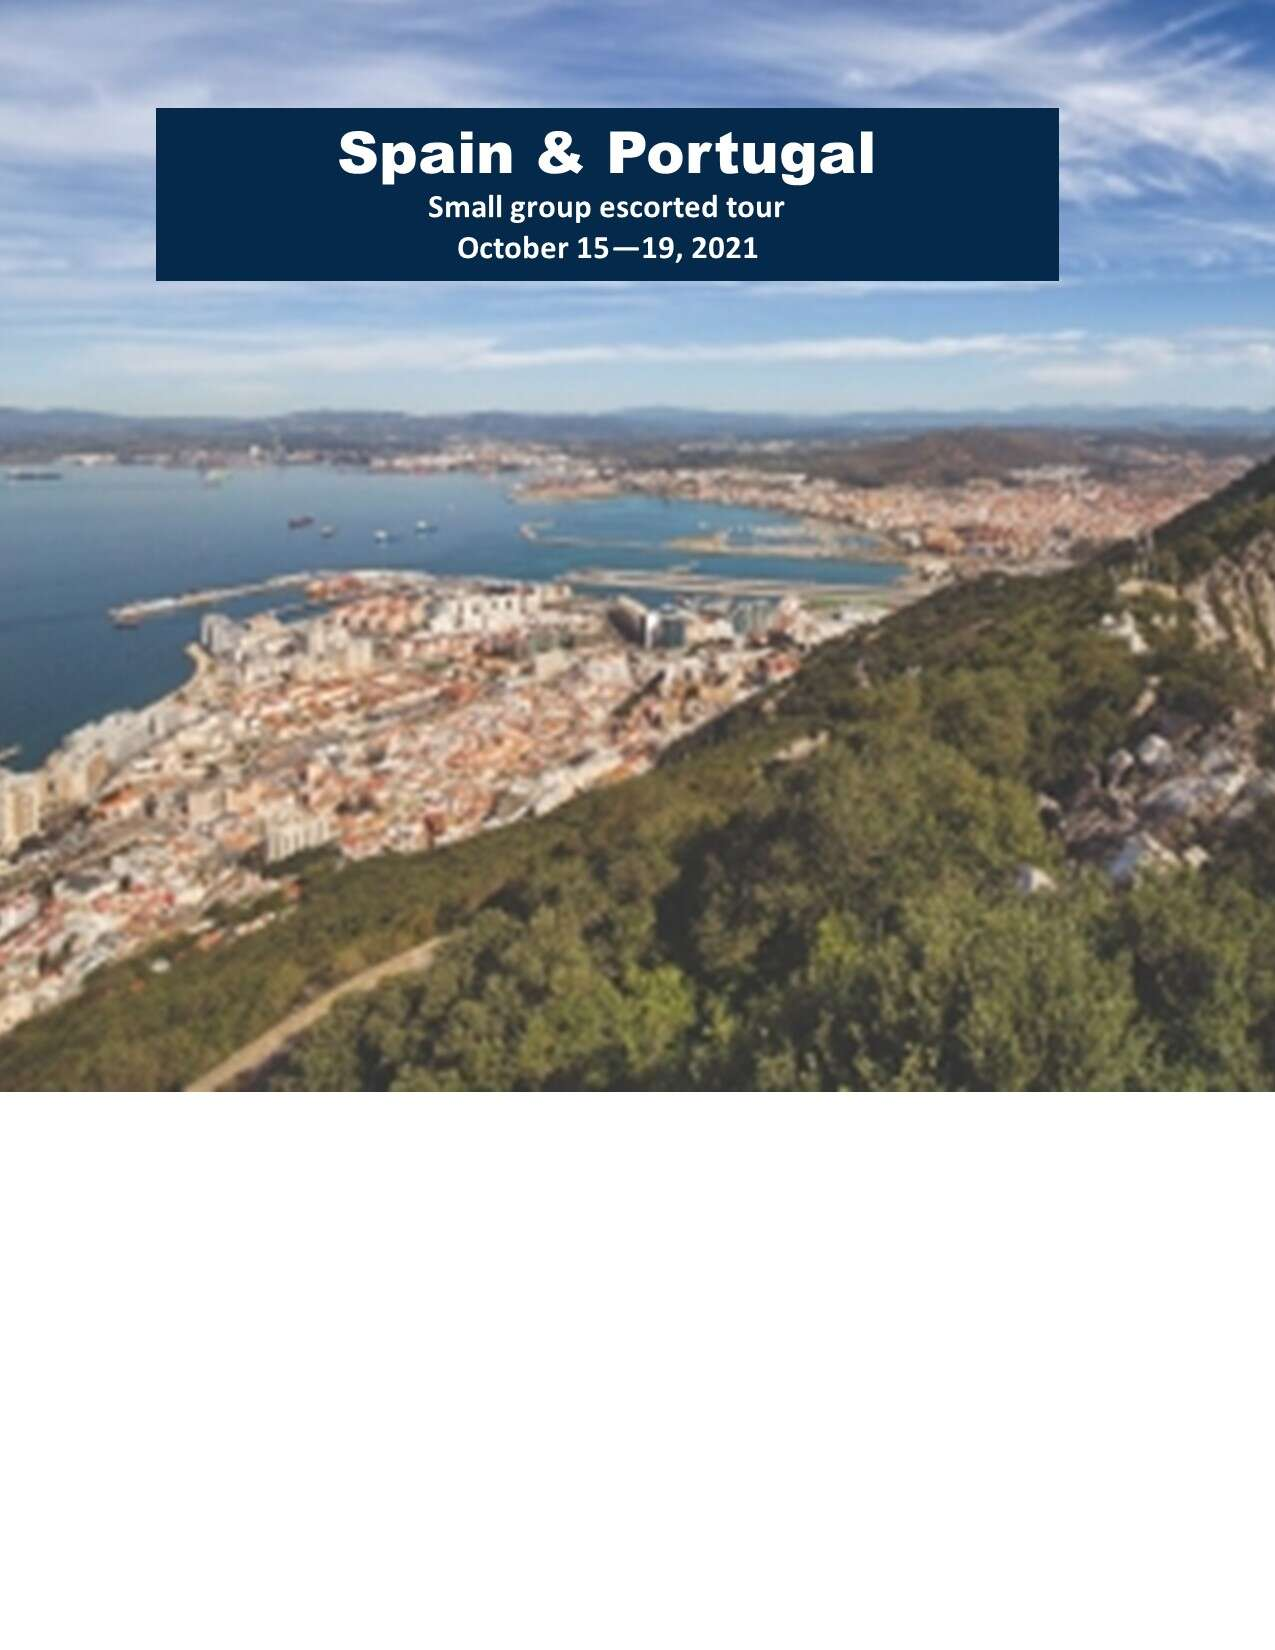 Spain & Portugal - LXR small group escorted tour October 2021